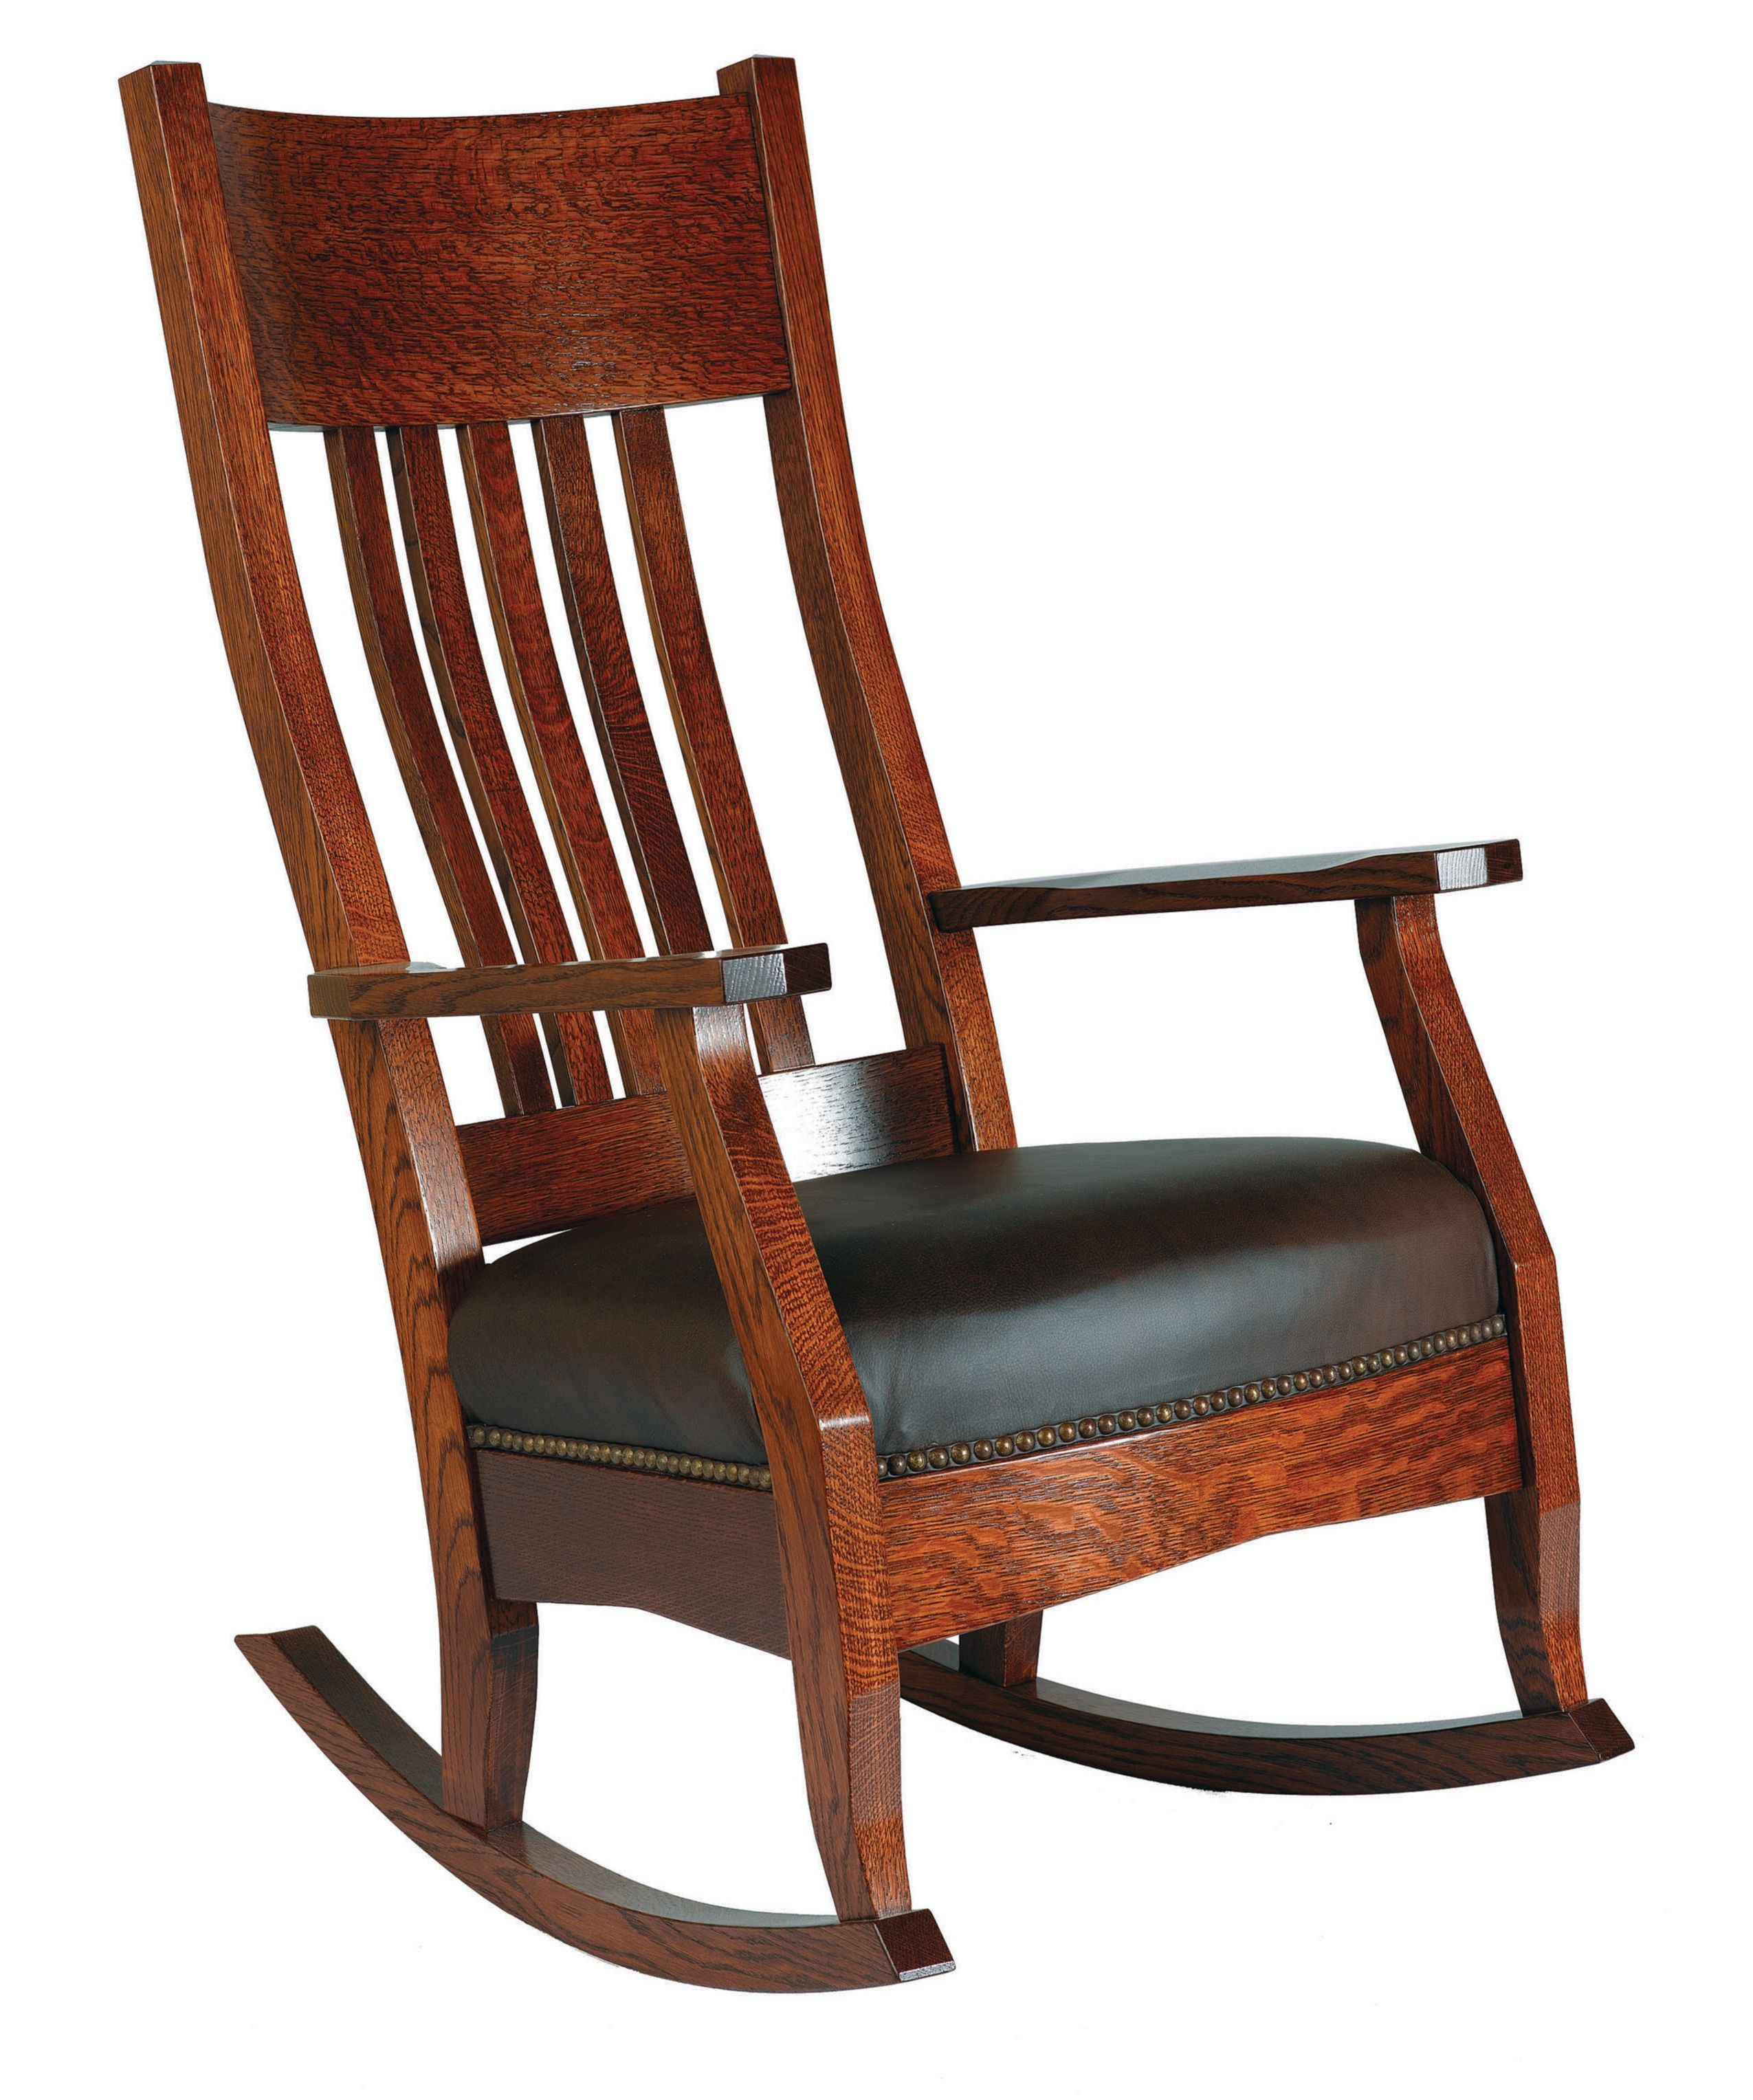 Amish Furniture | Solid Wood Mission Shaker Furniture | Chicago Area,  Illinois